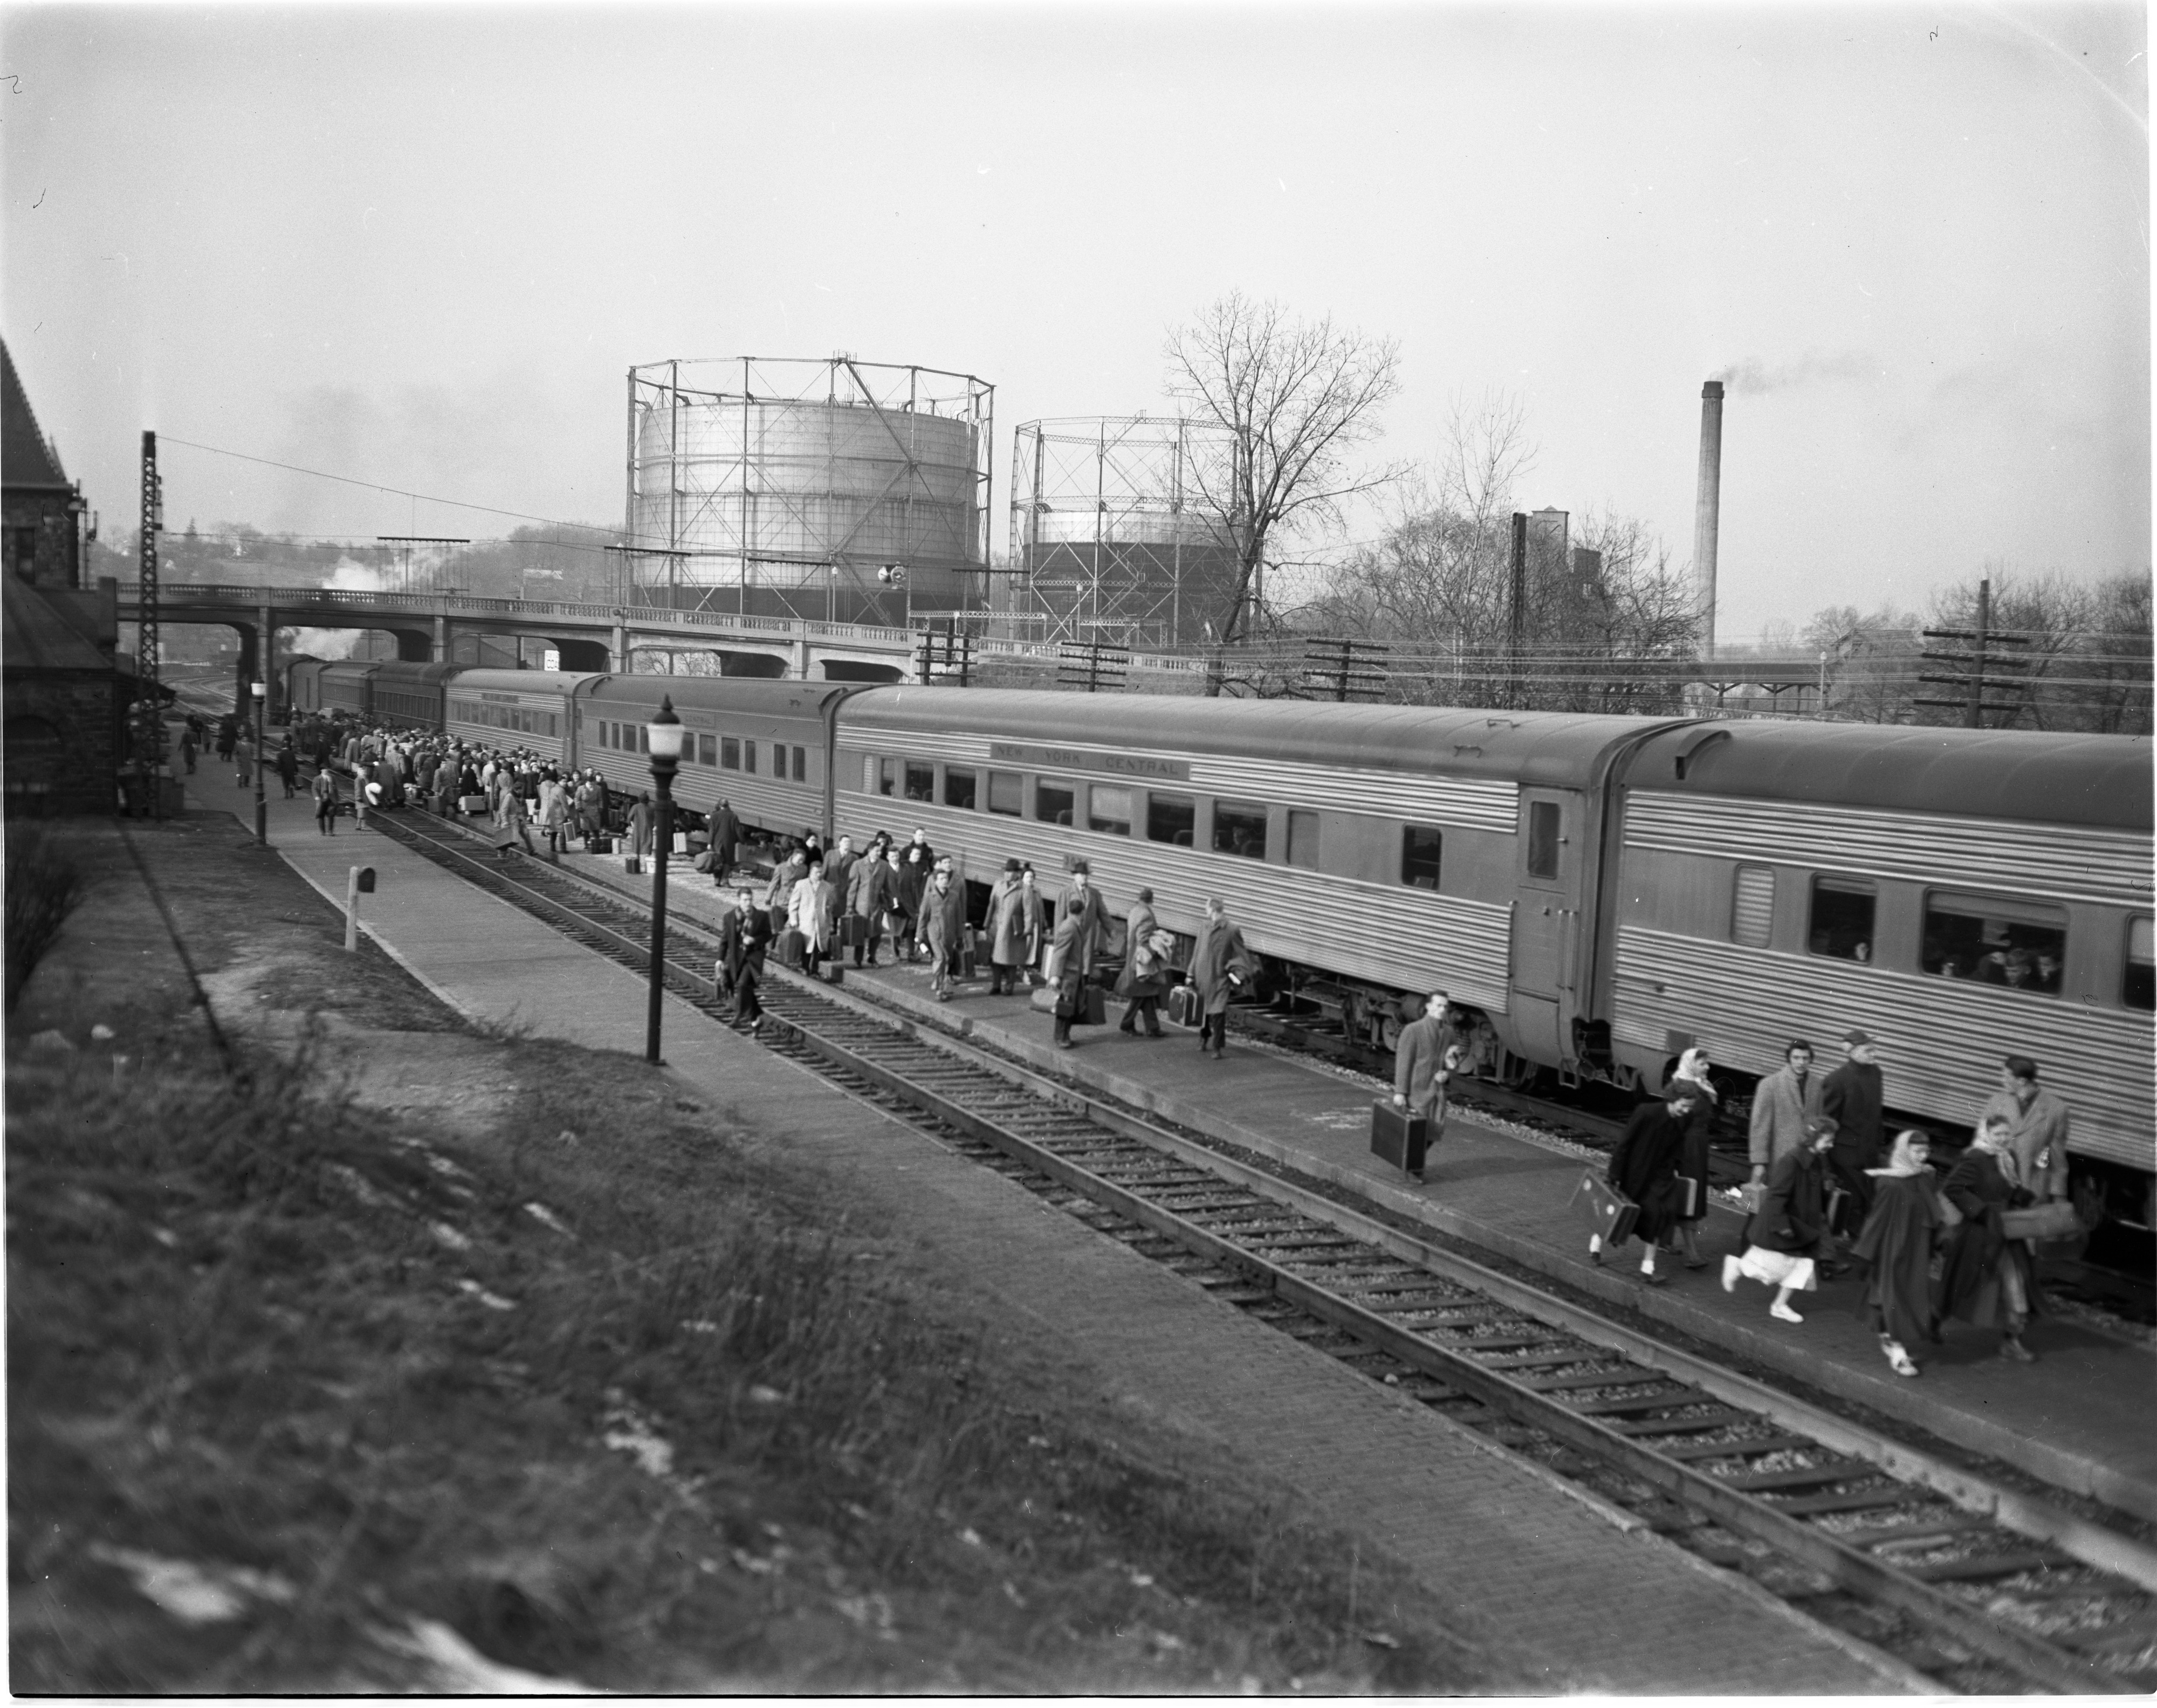 Students At M.C. Station Prepare To Depart For Holidays, December 1949 image